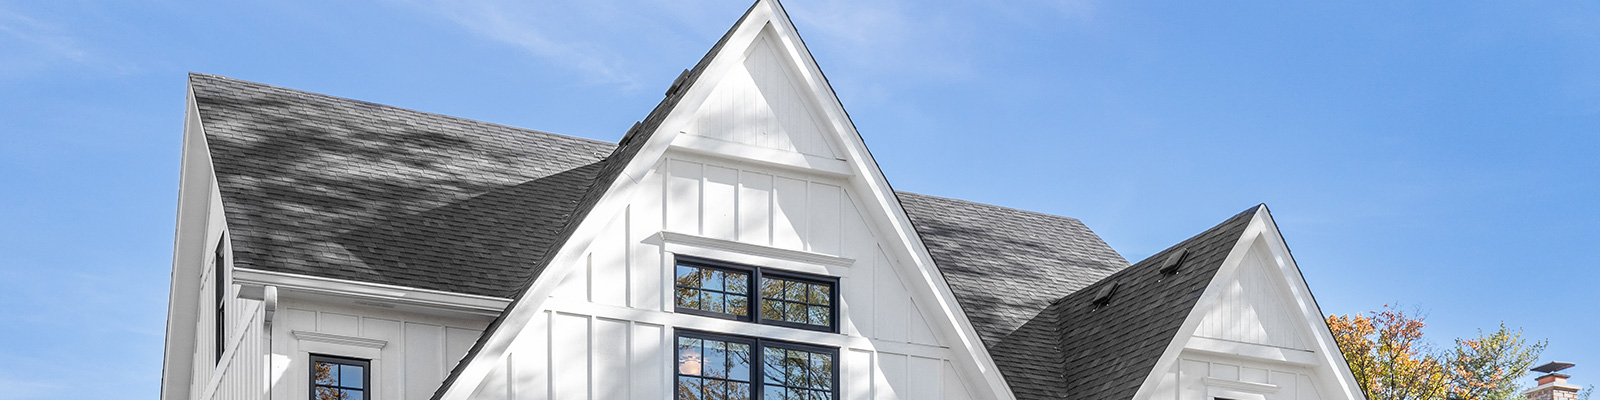 Residential Roofing in Houston TX